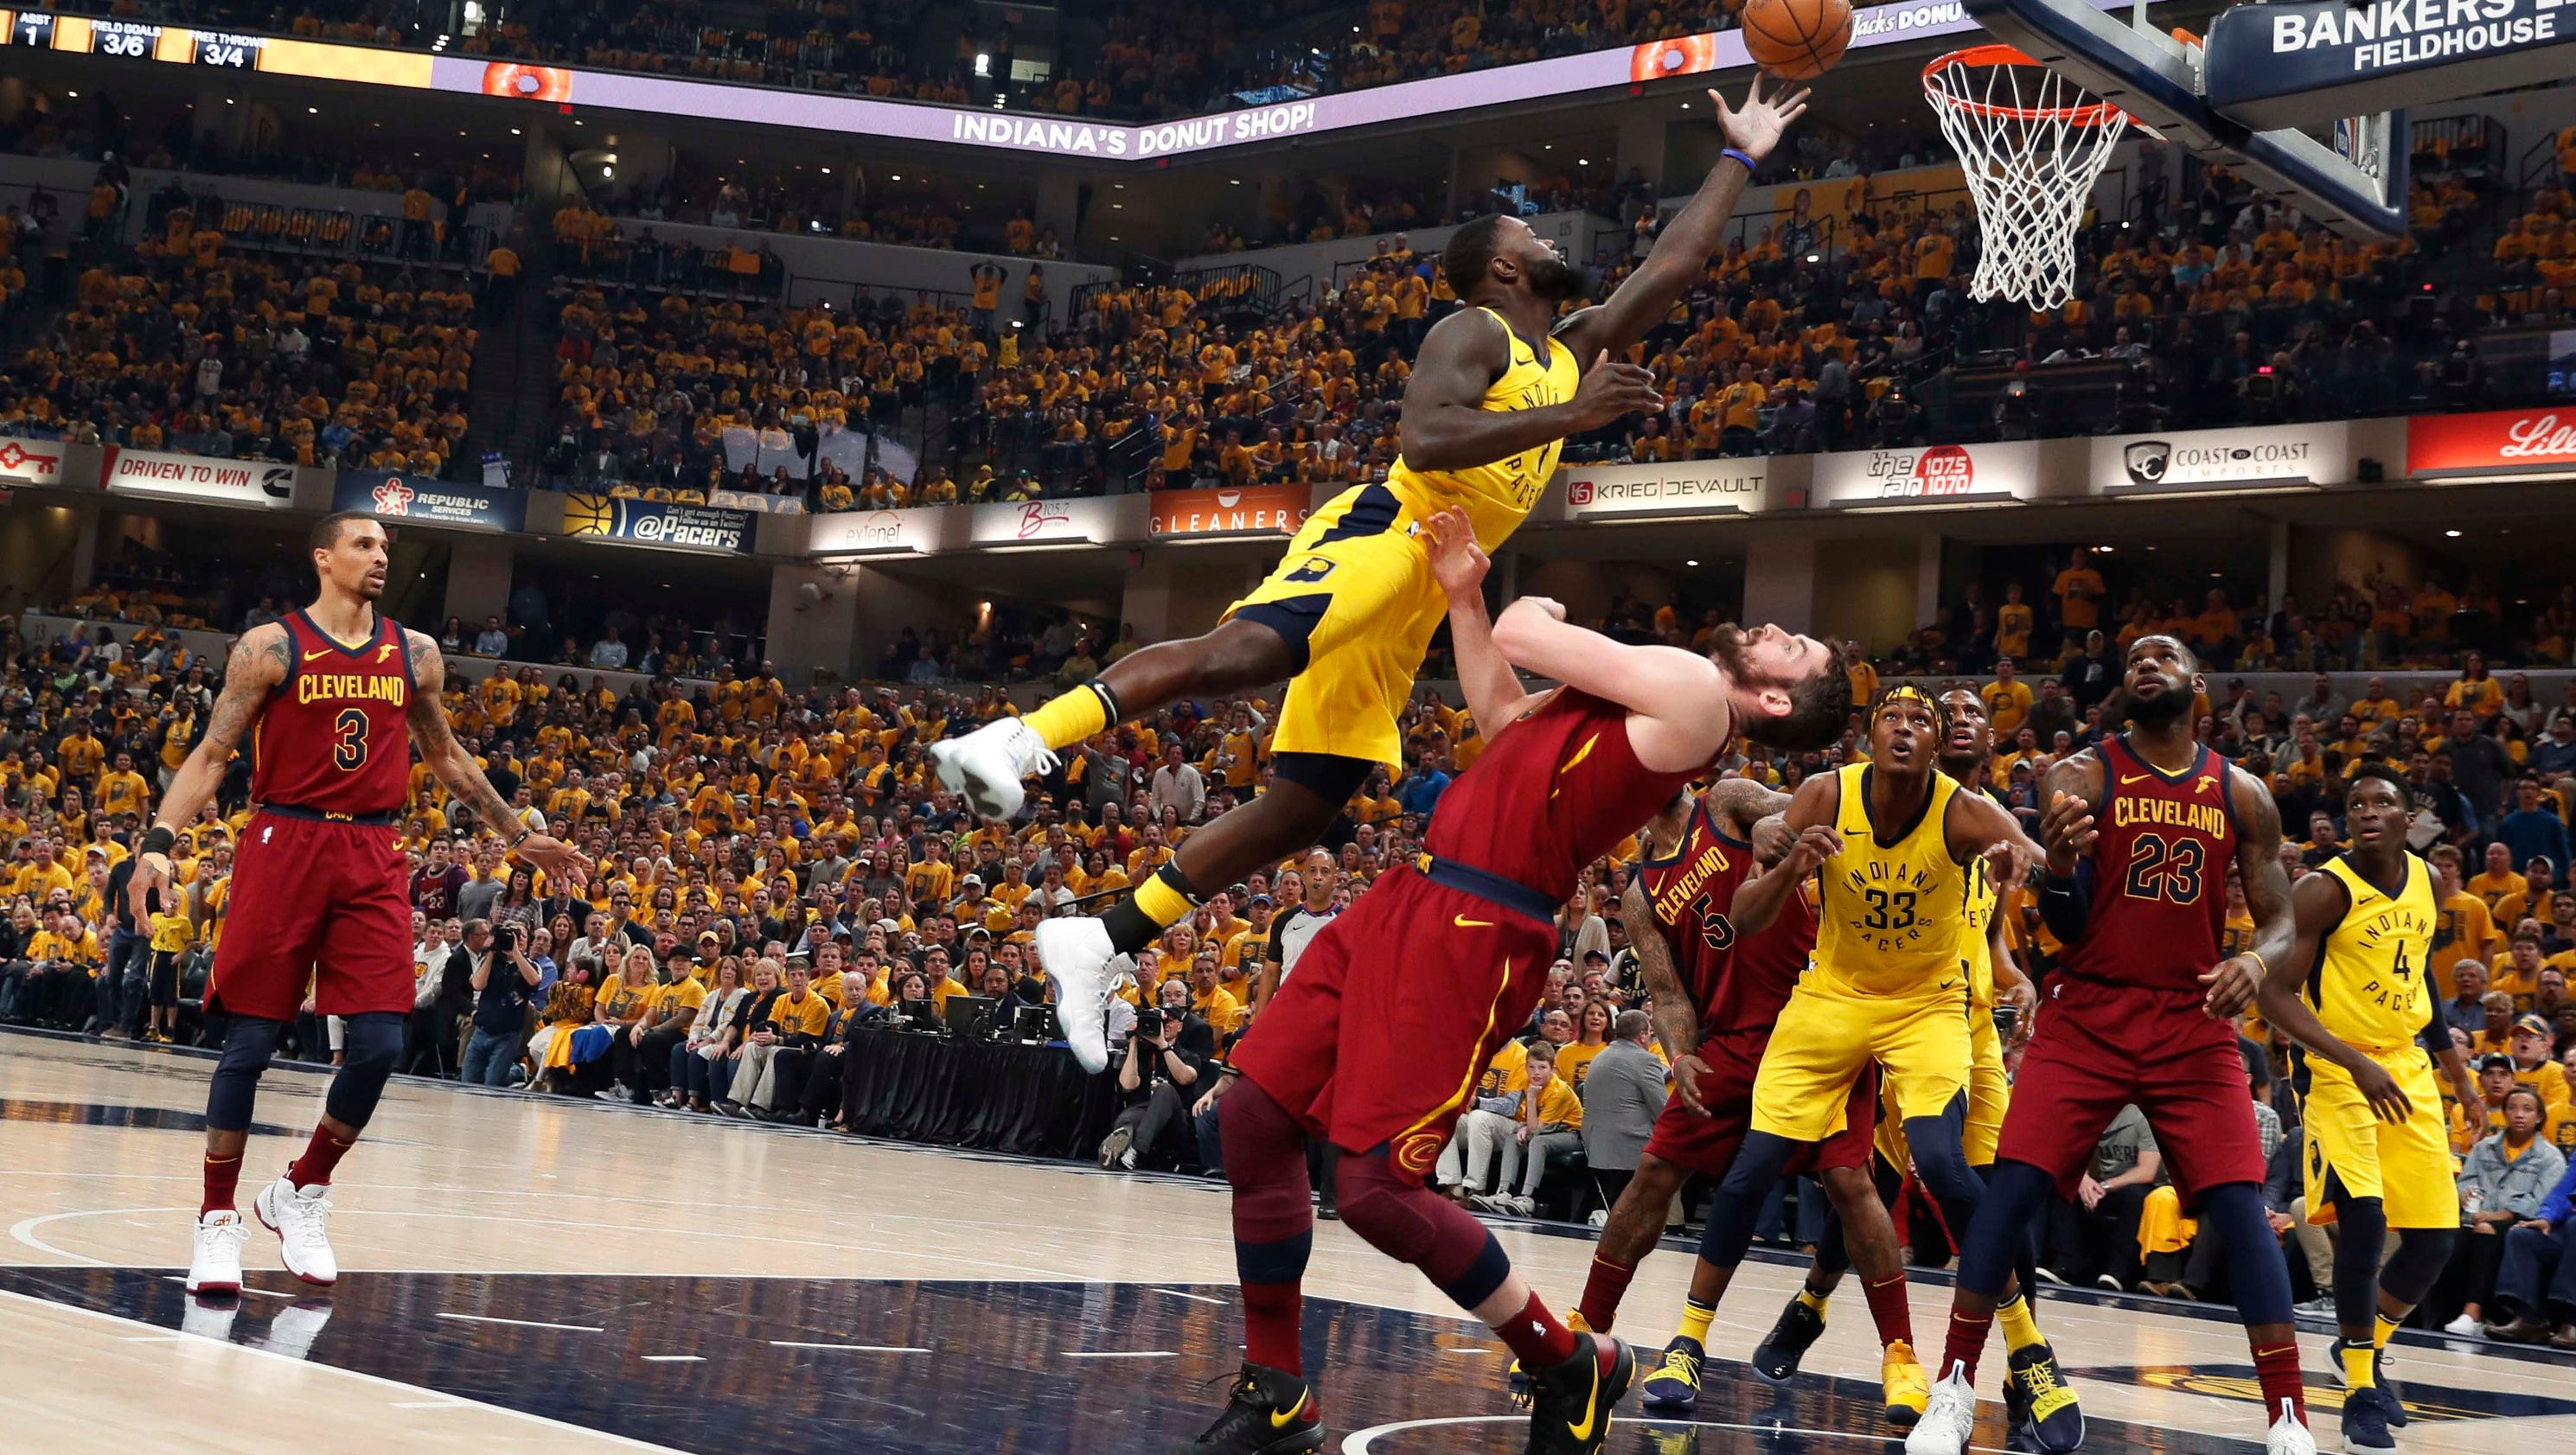 Why LeBron James, Cavs are in trouble after Game 3 loss to Pacers